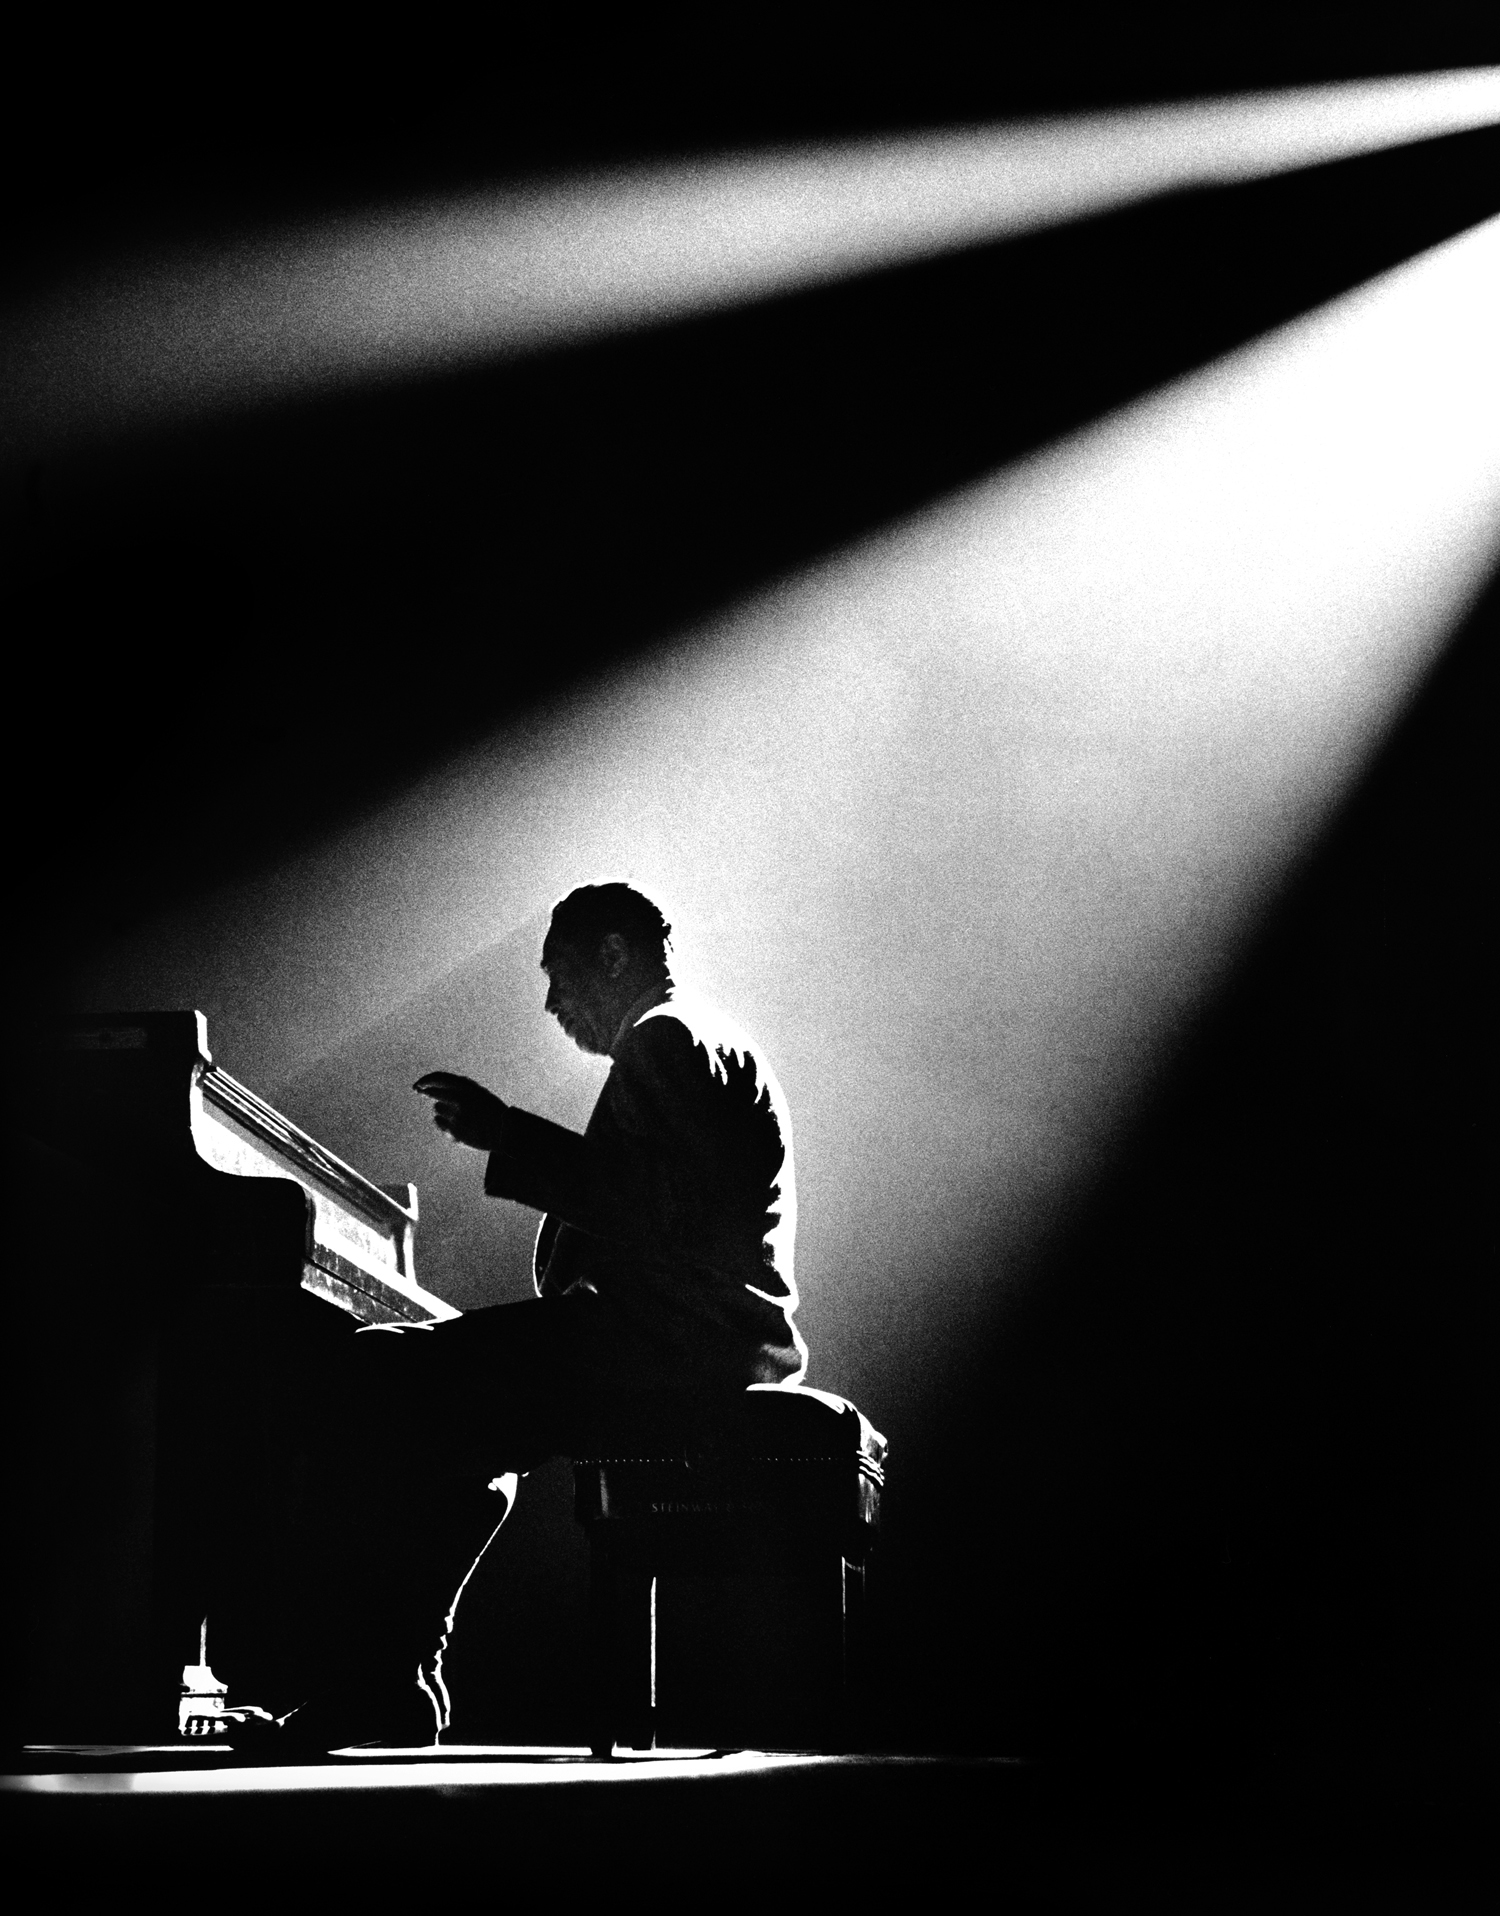 Iconic images of jazz legends at the national portrait gallery